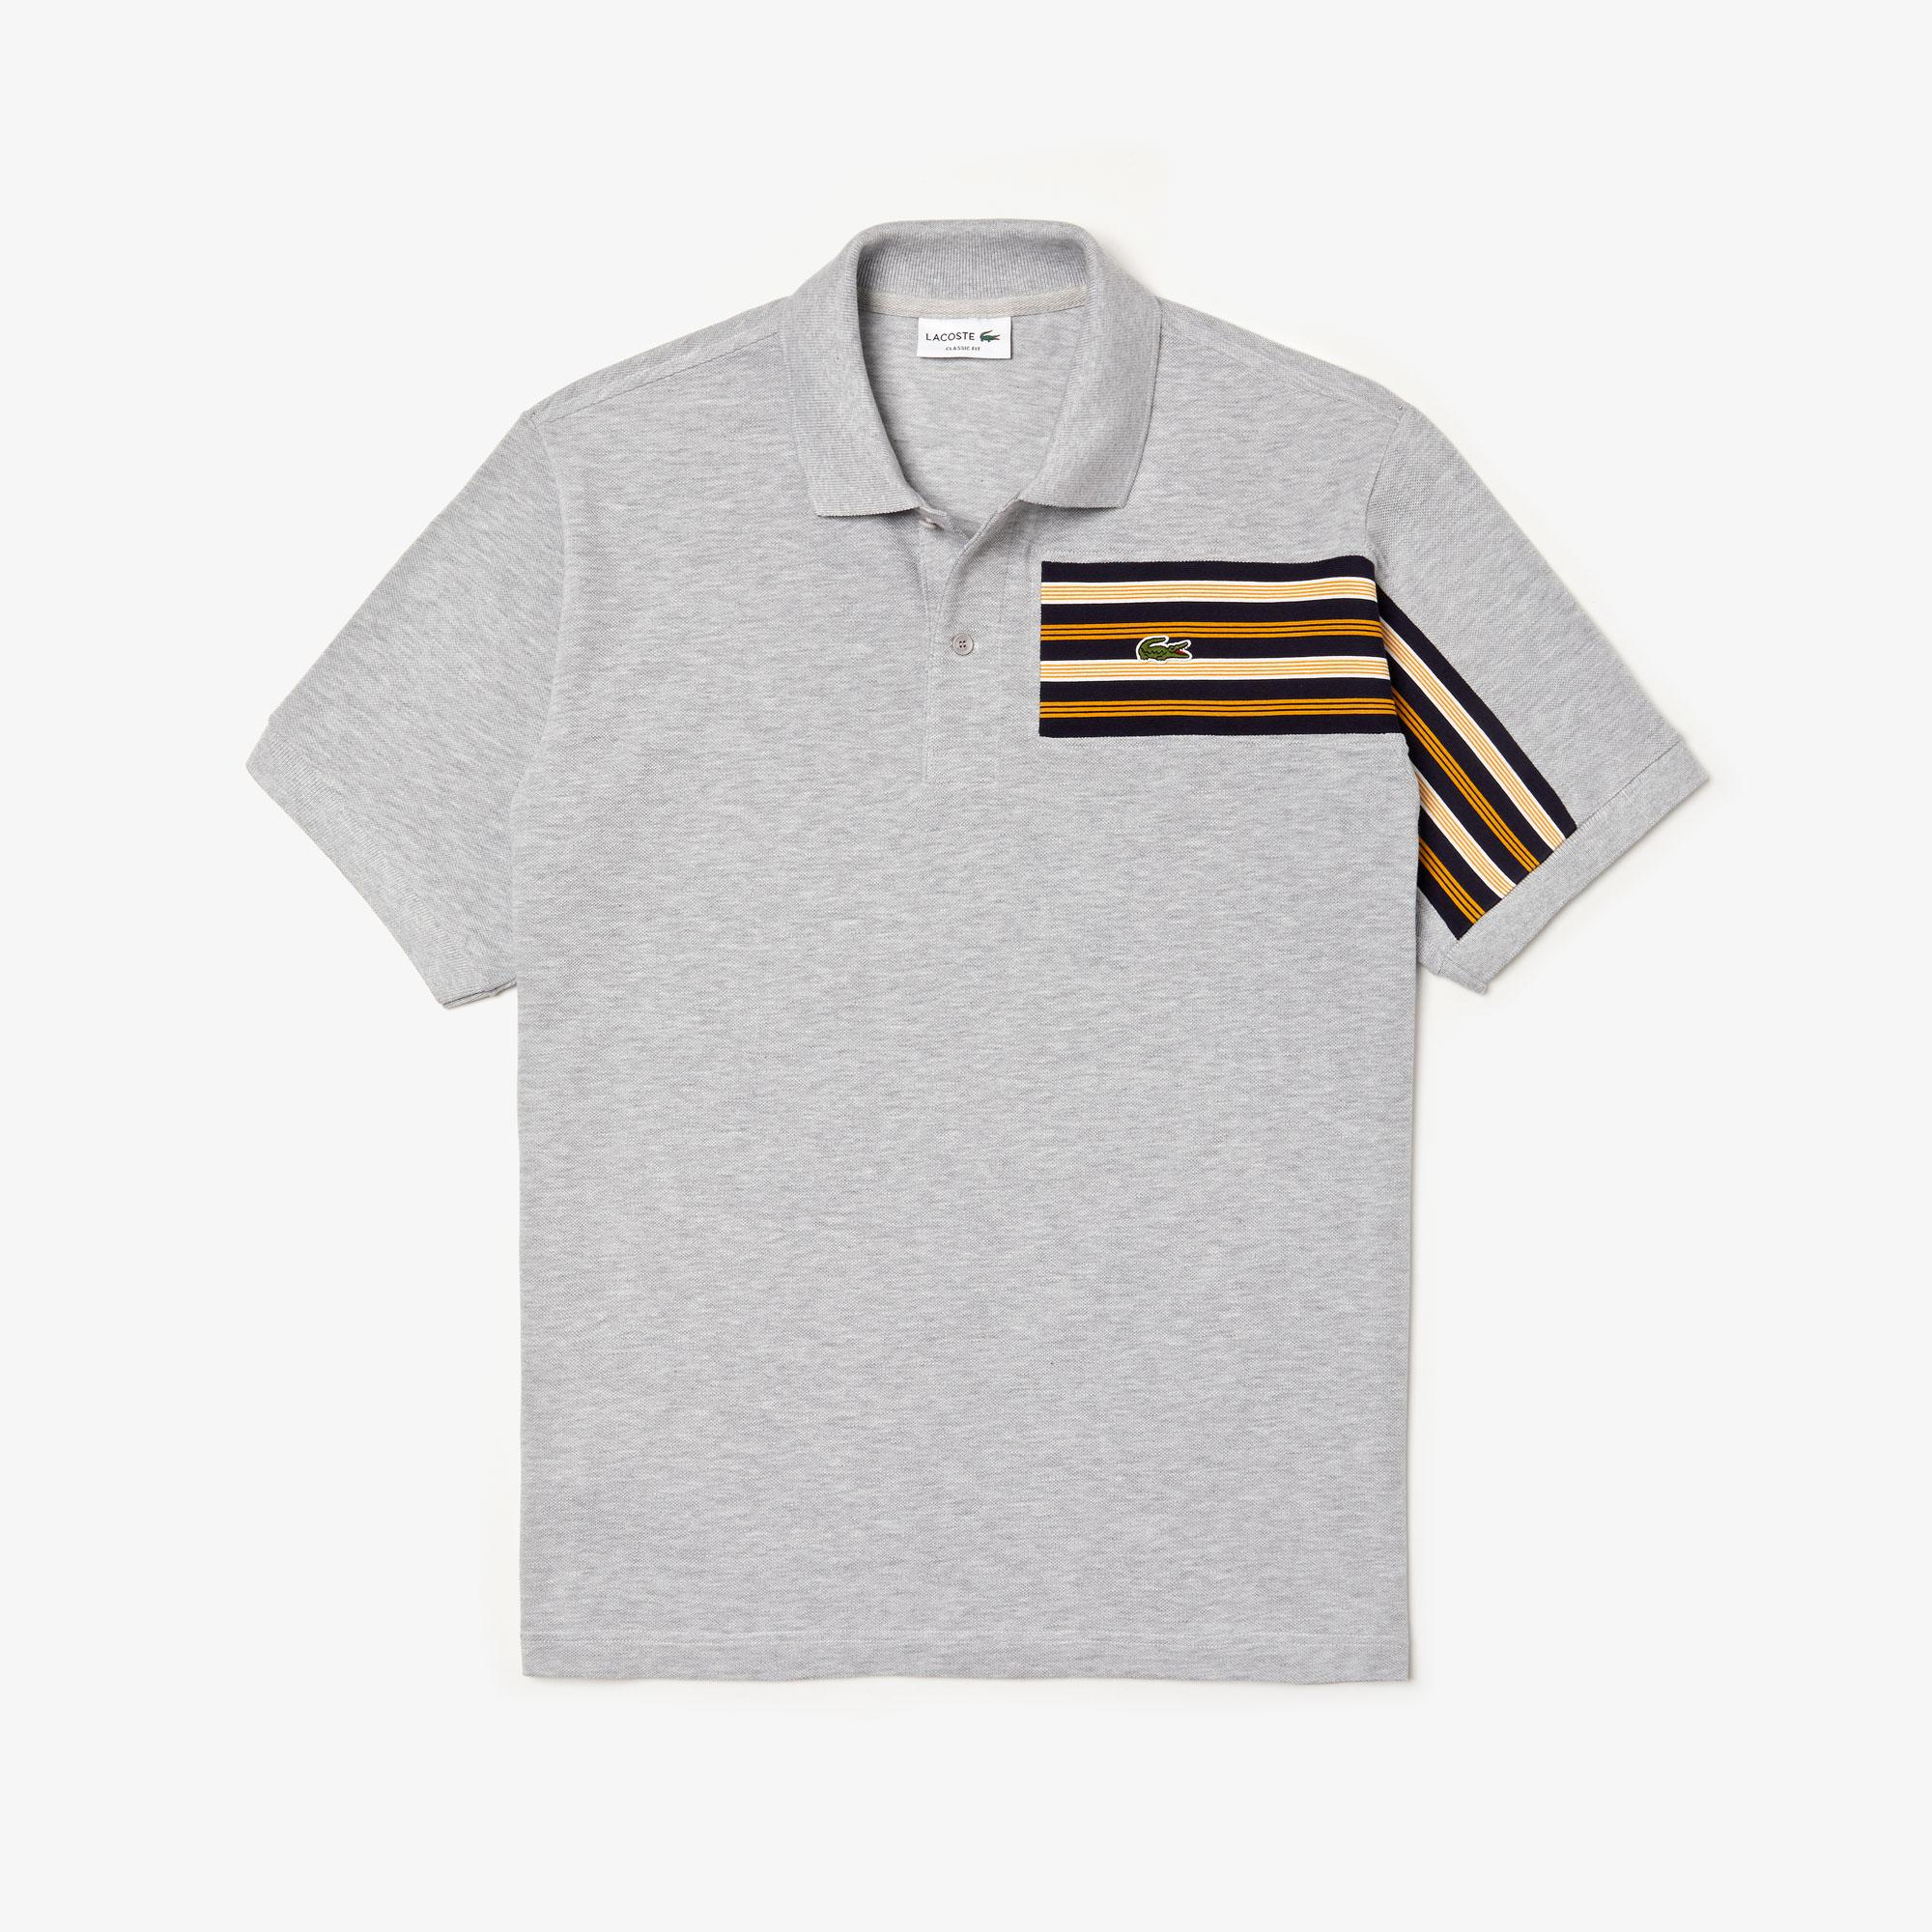 Lacoste Men's L.12.12 Striped Panel Cotton Piqué Polo Shirt